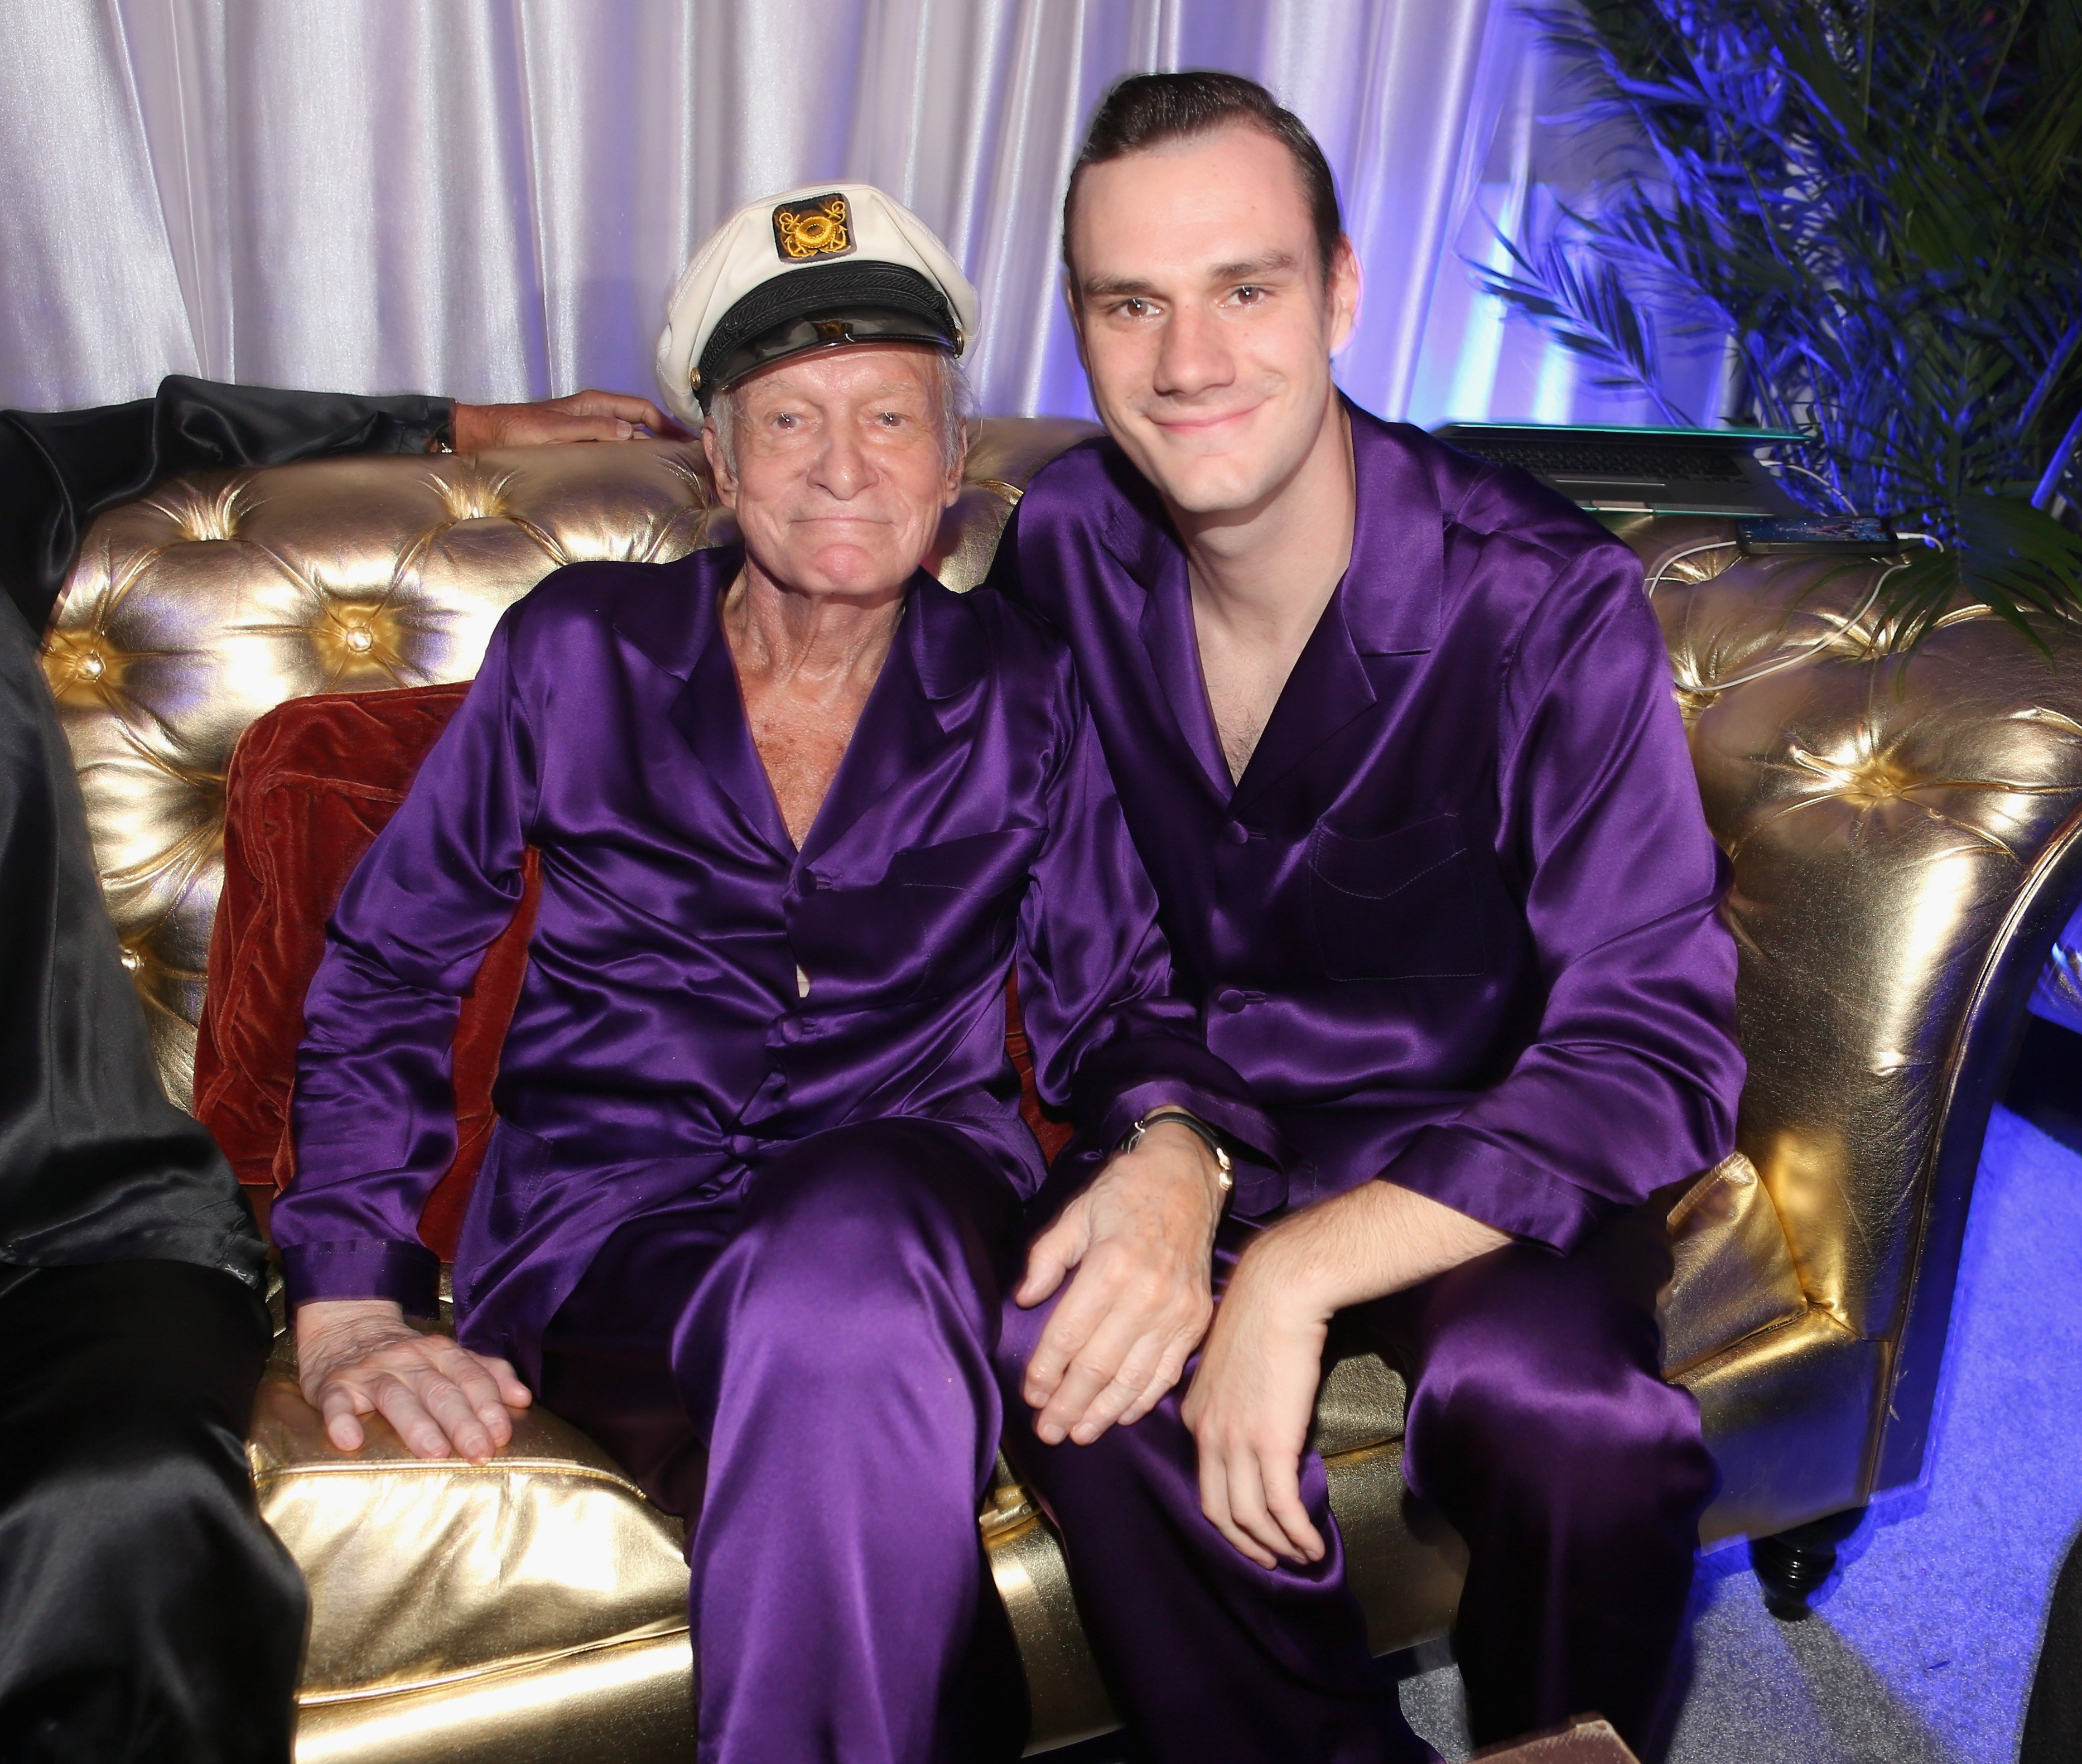 Hugh Hefner and Cooper Hefner attend the Annual Midsummer Night's Dream Party at the Playboy Mansion on August 16, 2014, in Holmby Hills, California. | Source: Getty Images.